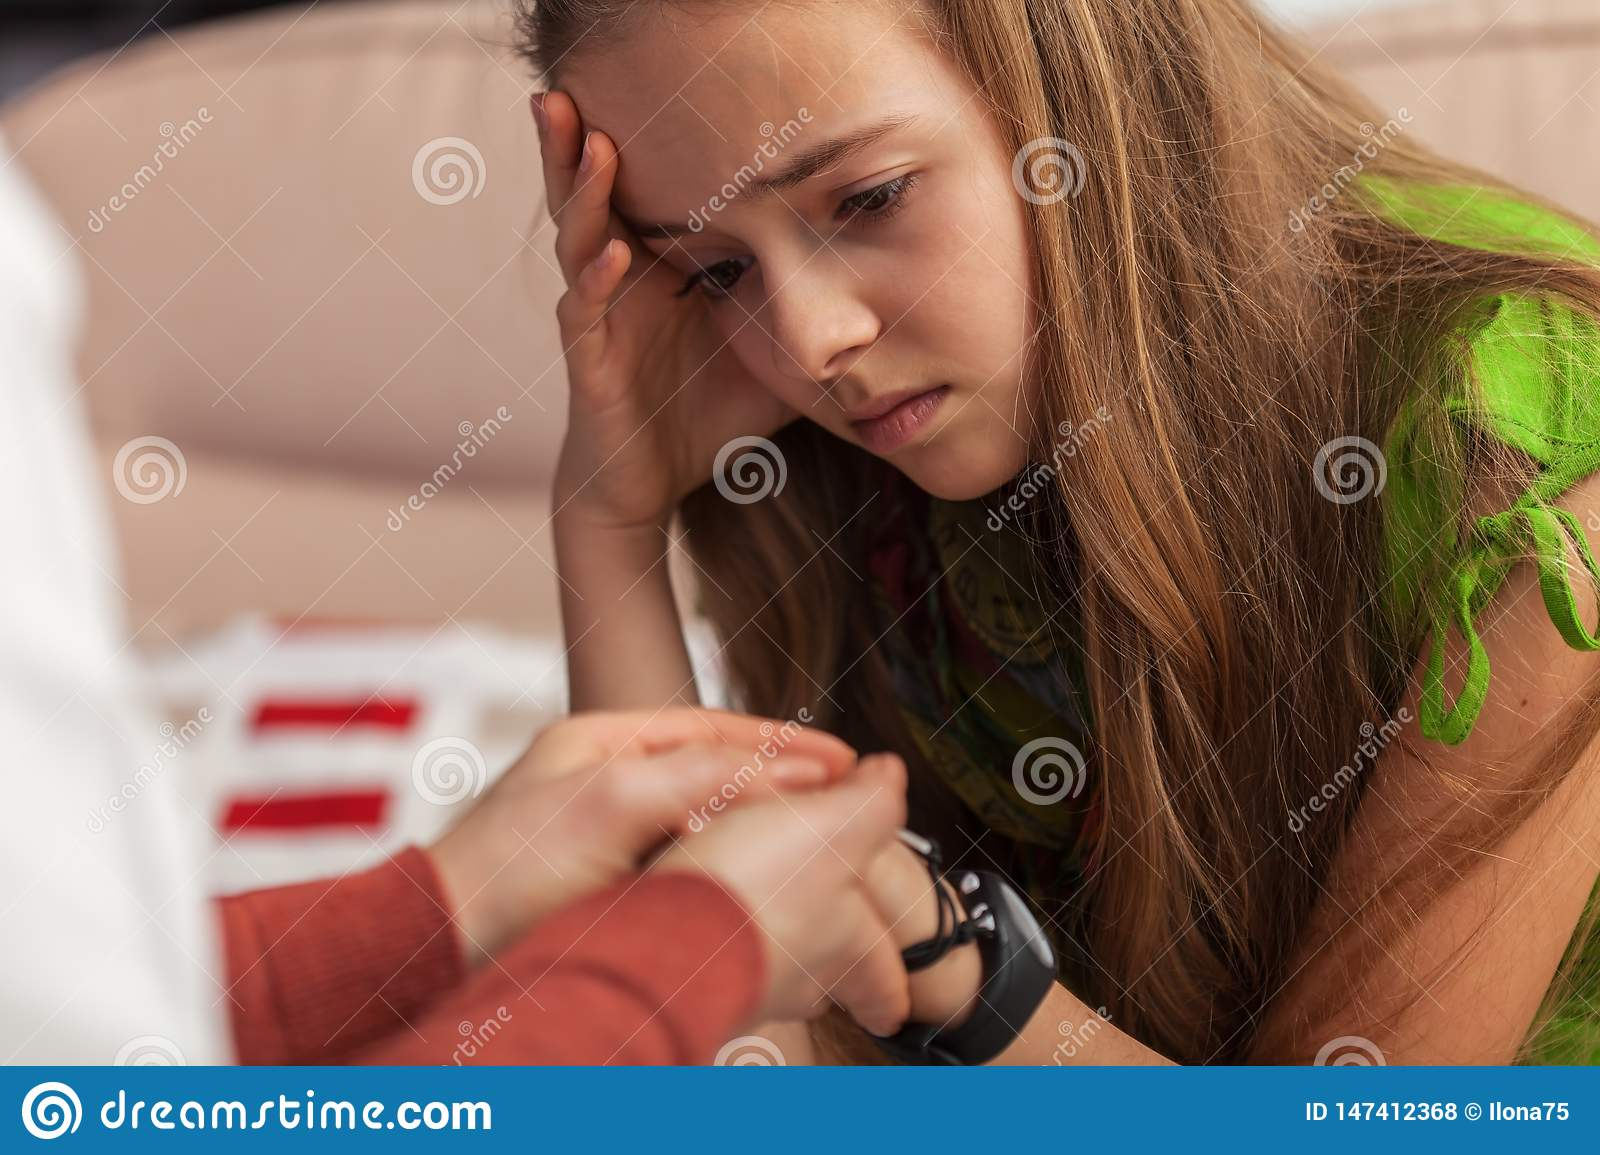 Sad teenager girl at counseling - woman professional hands holding and comforting young girl